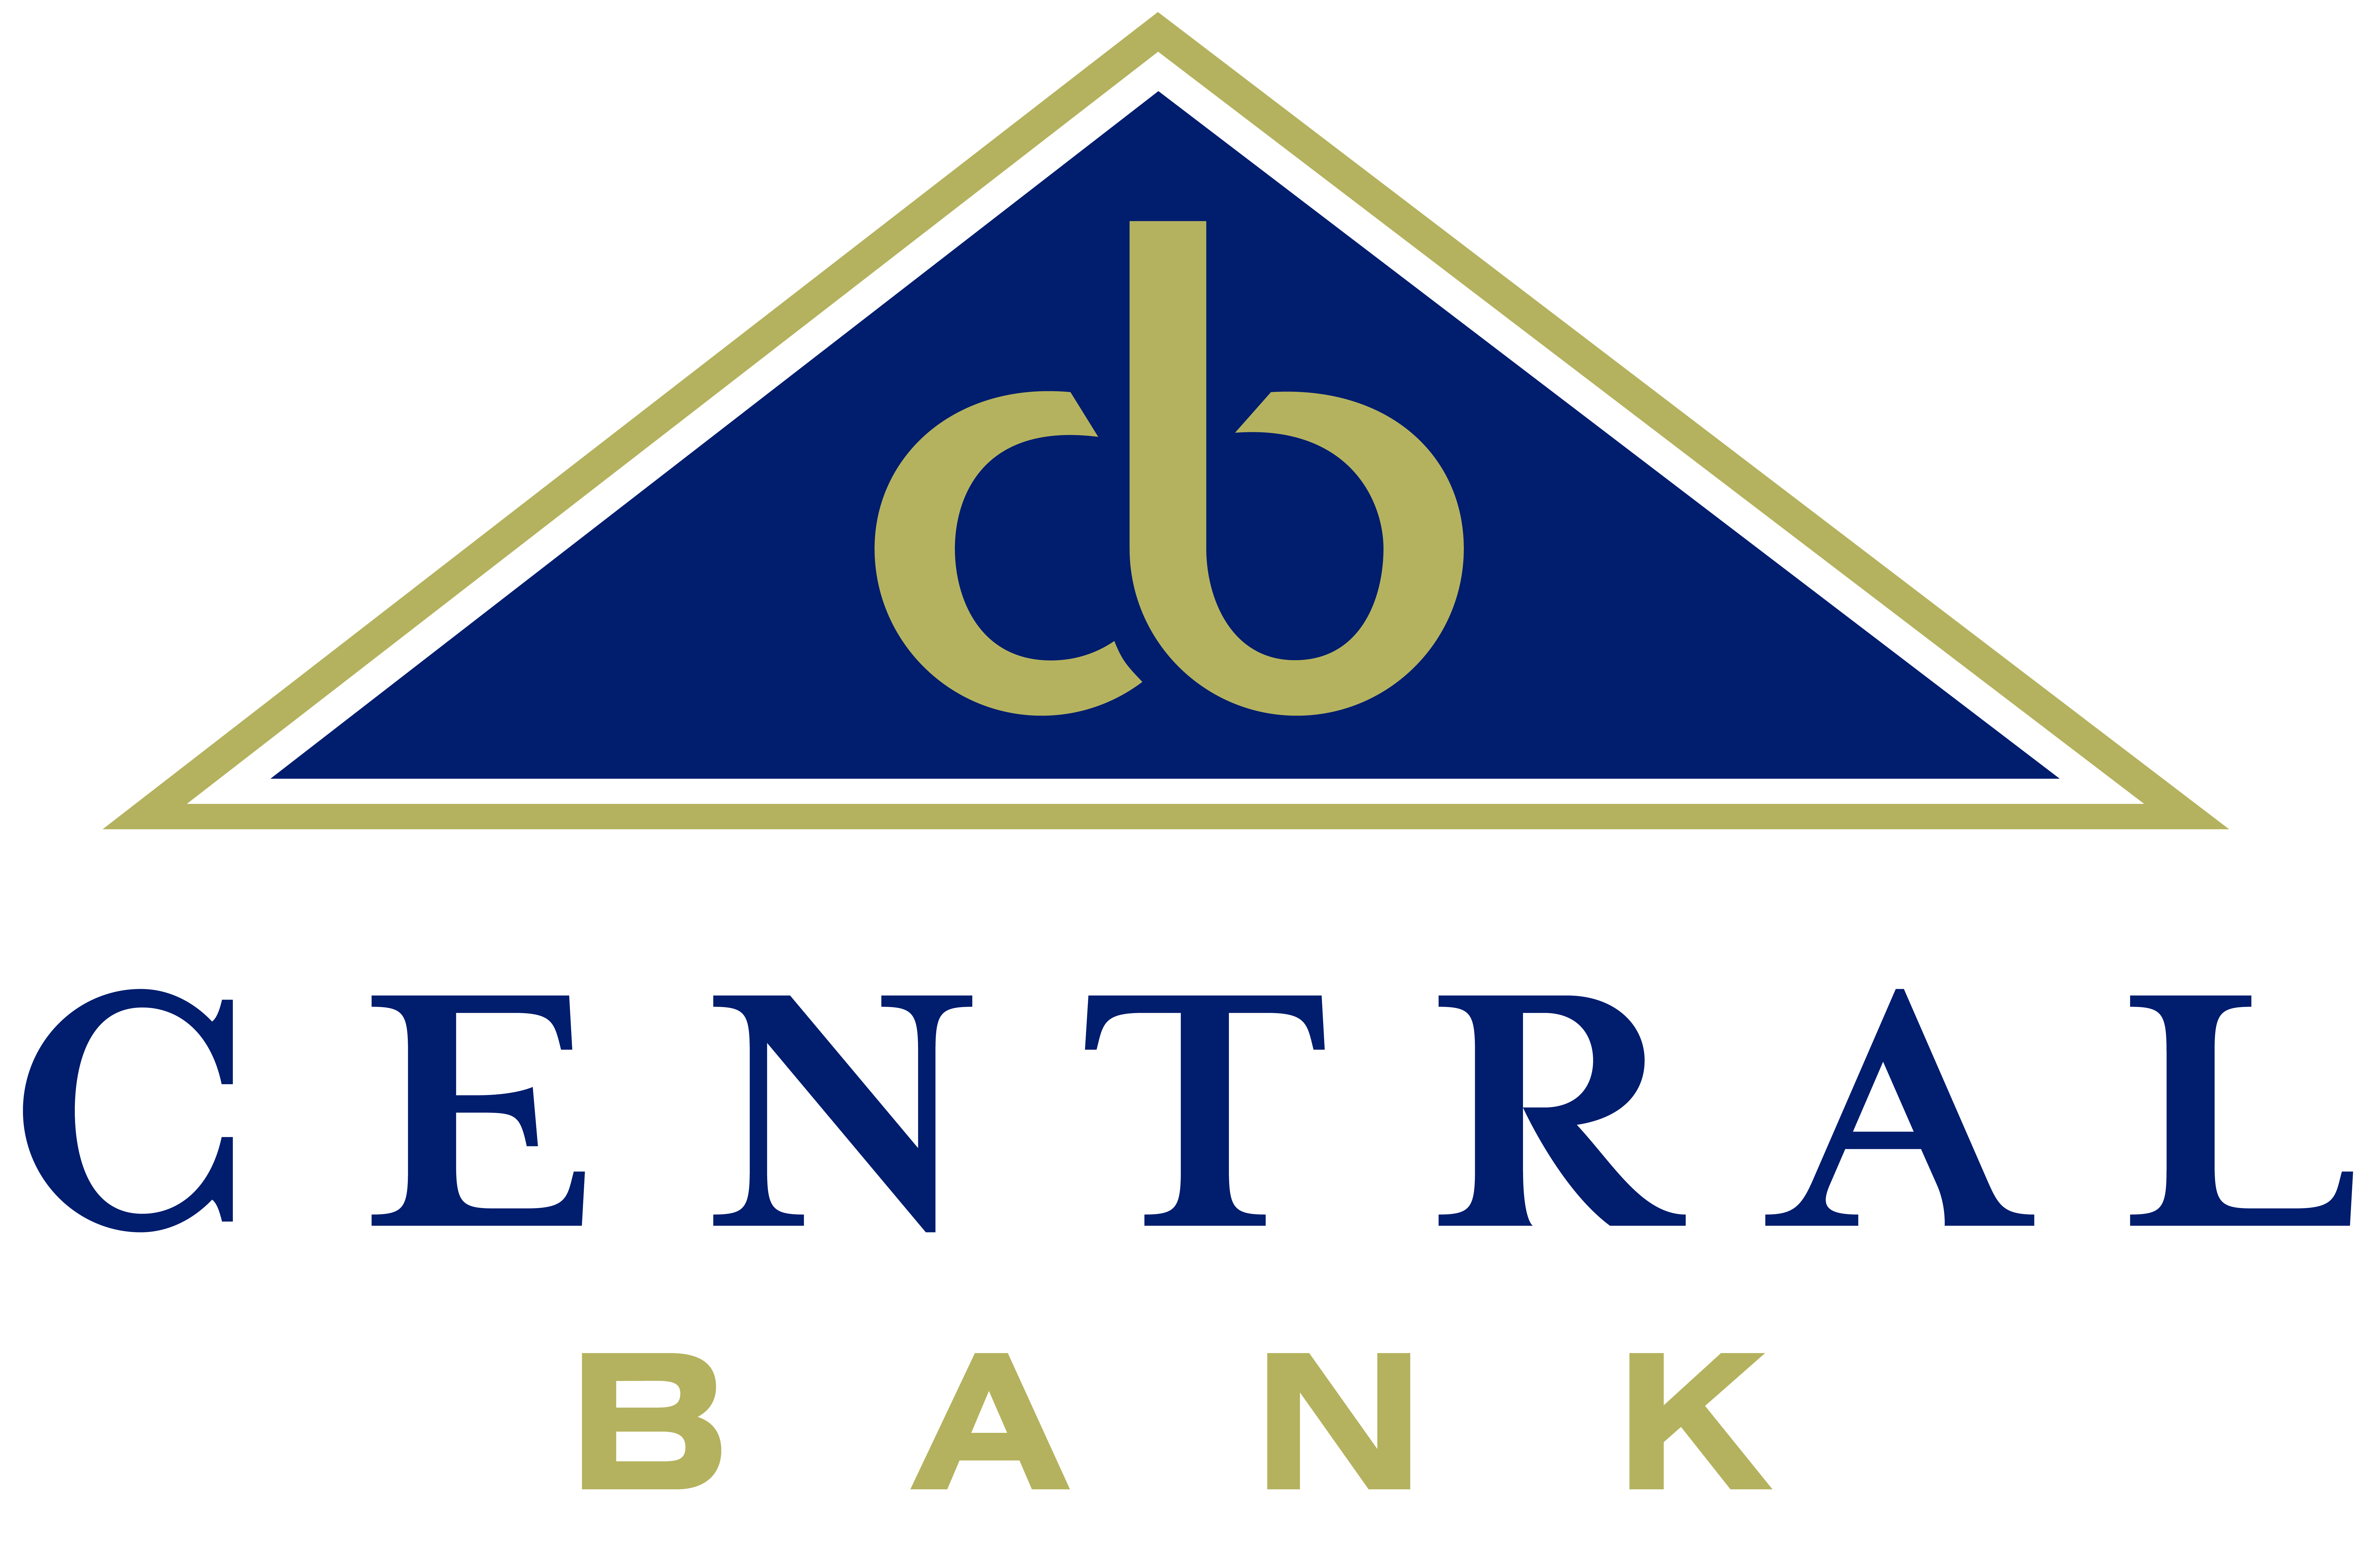 Central Bank Opens in new window